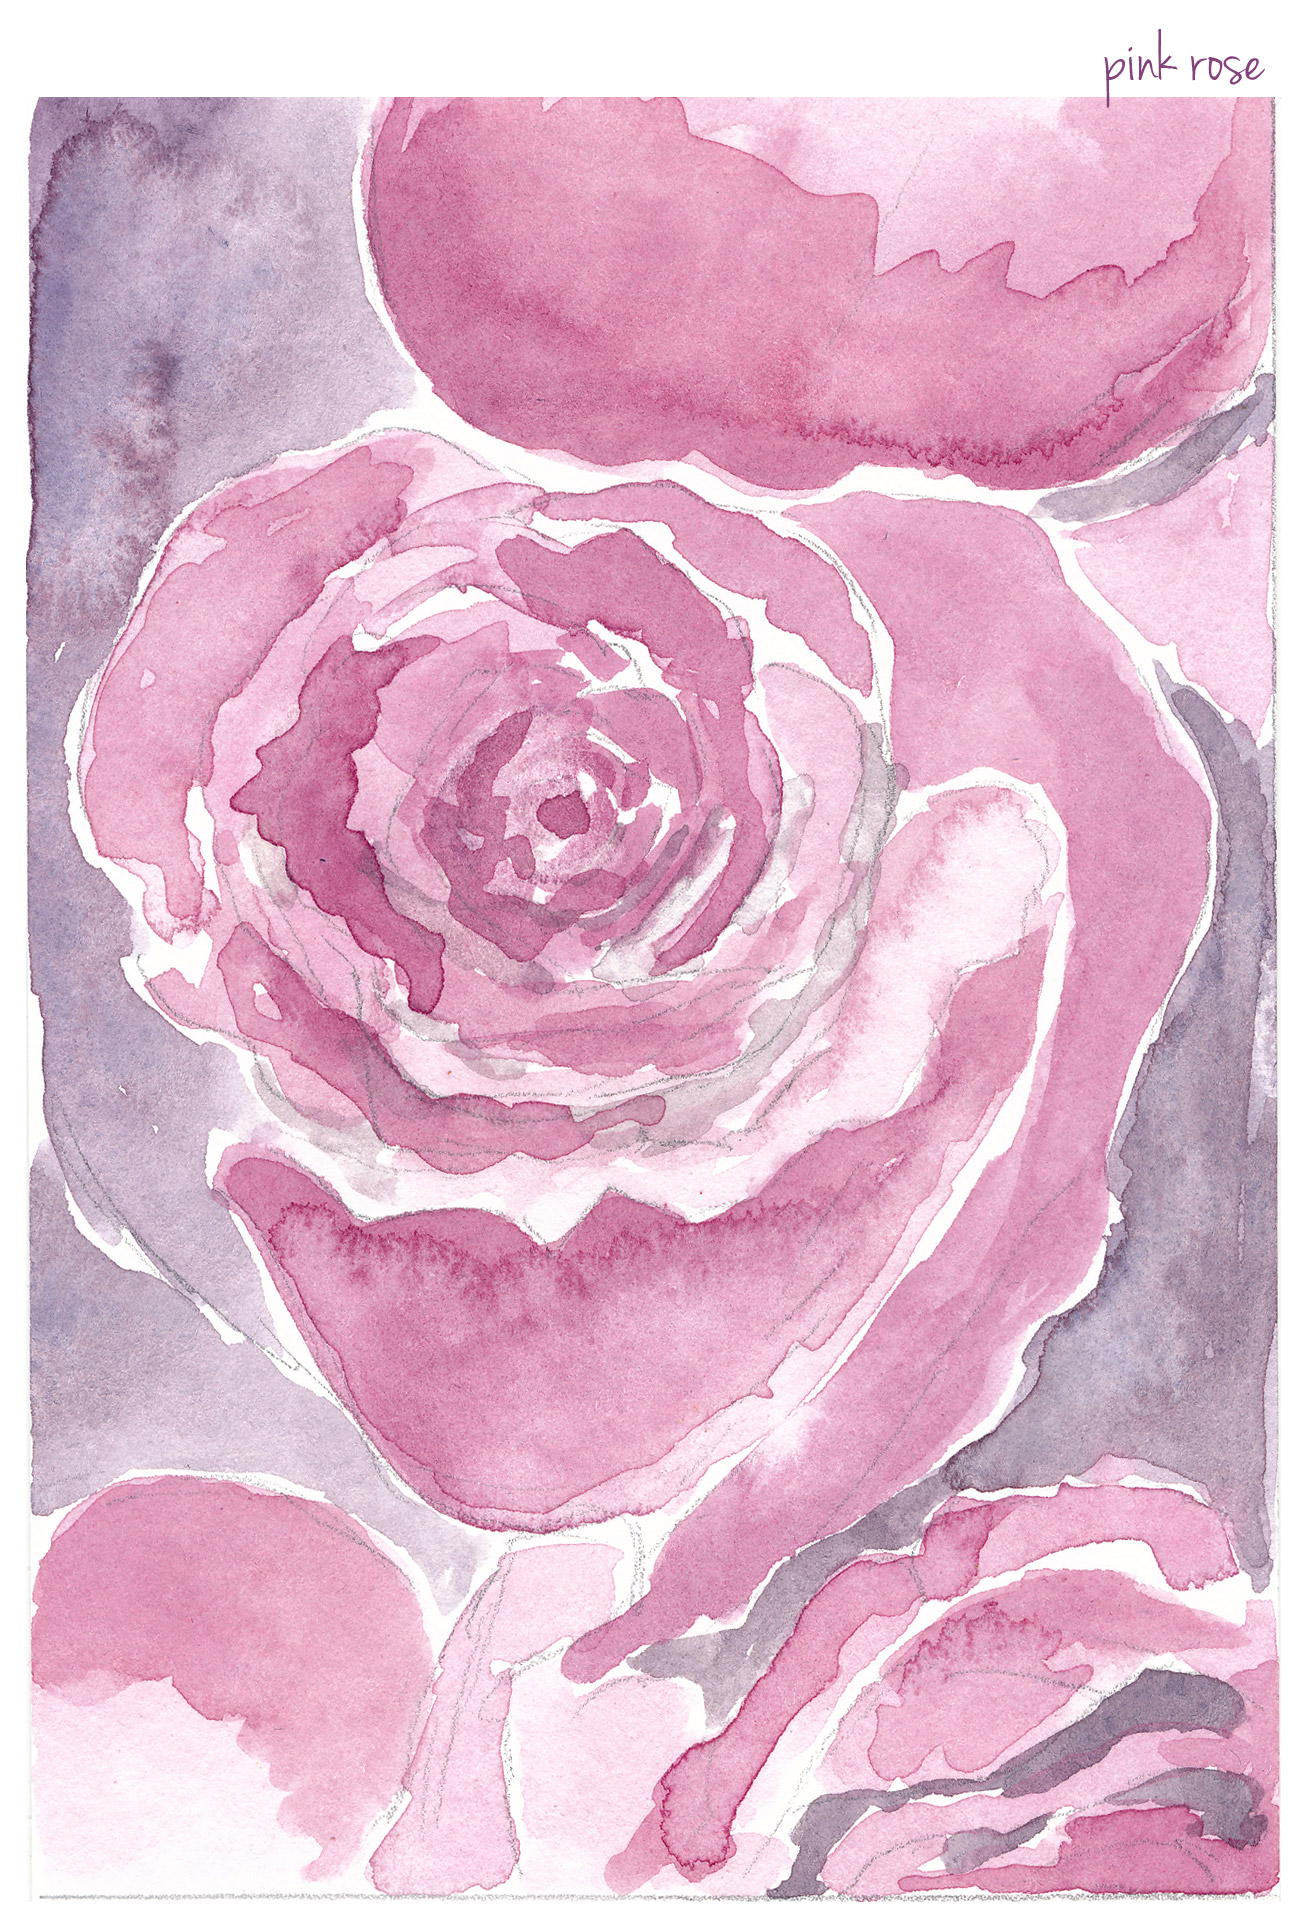 rose-sketches-pink.jpg